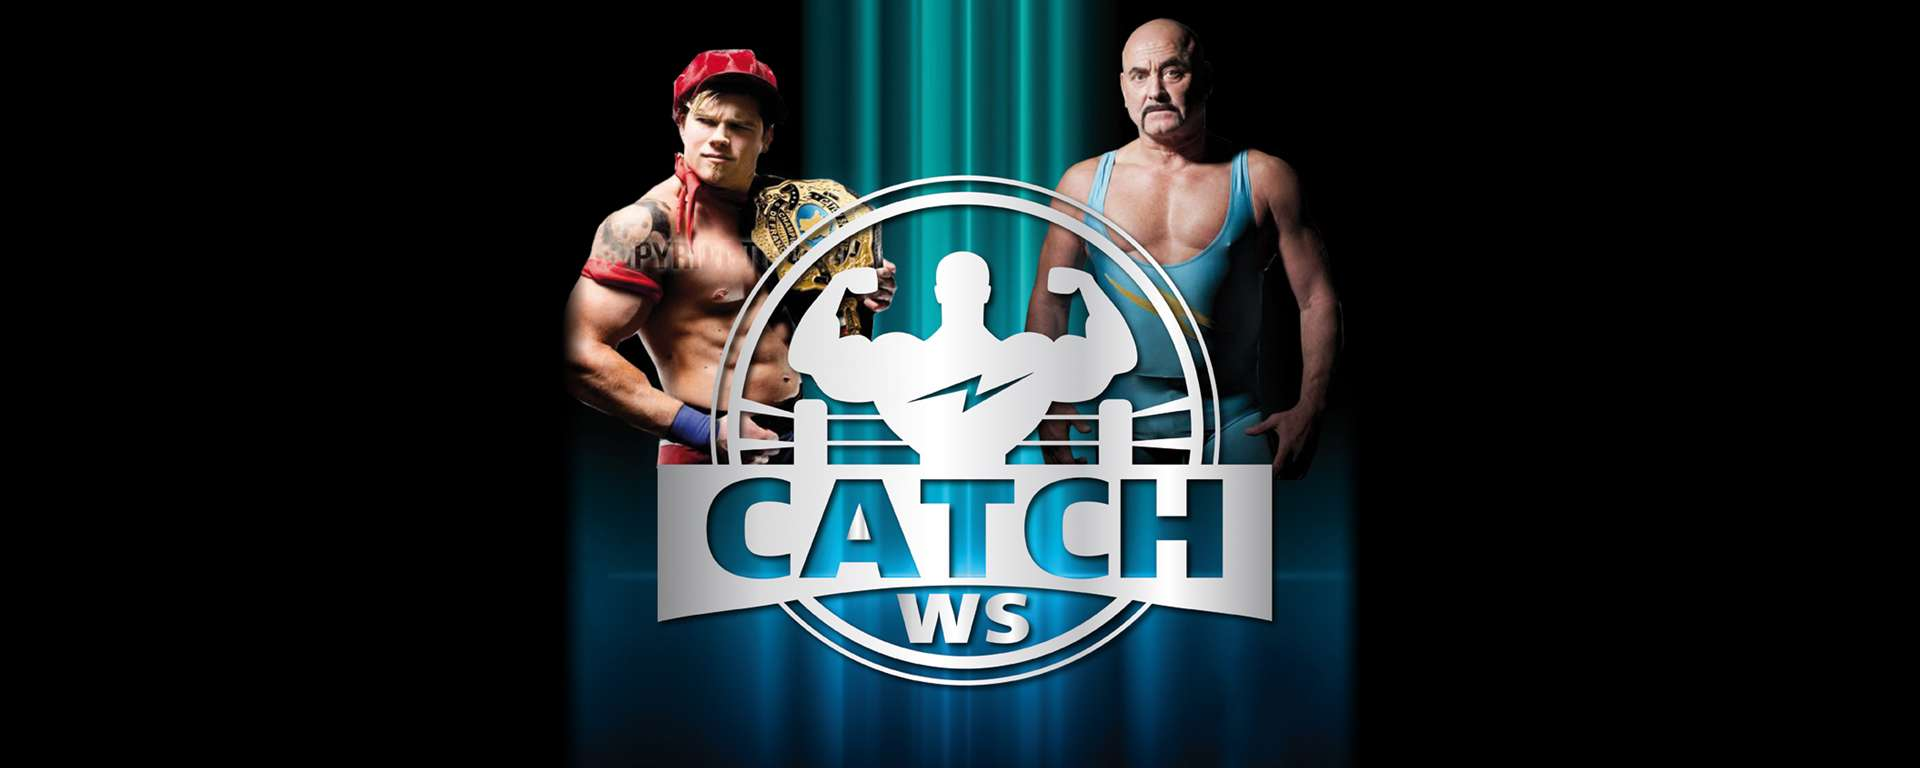 Gala de Catch WS